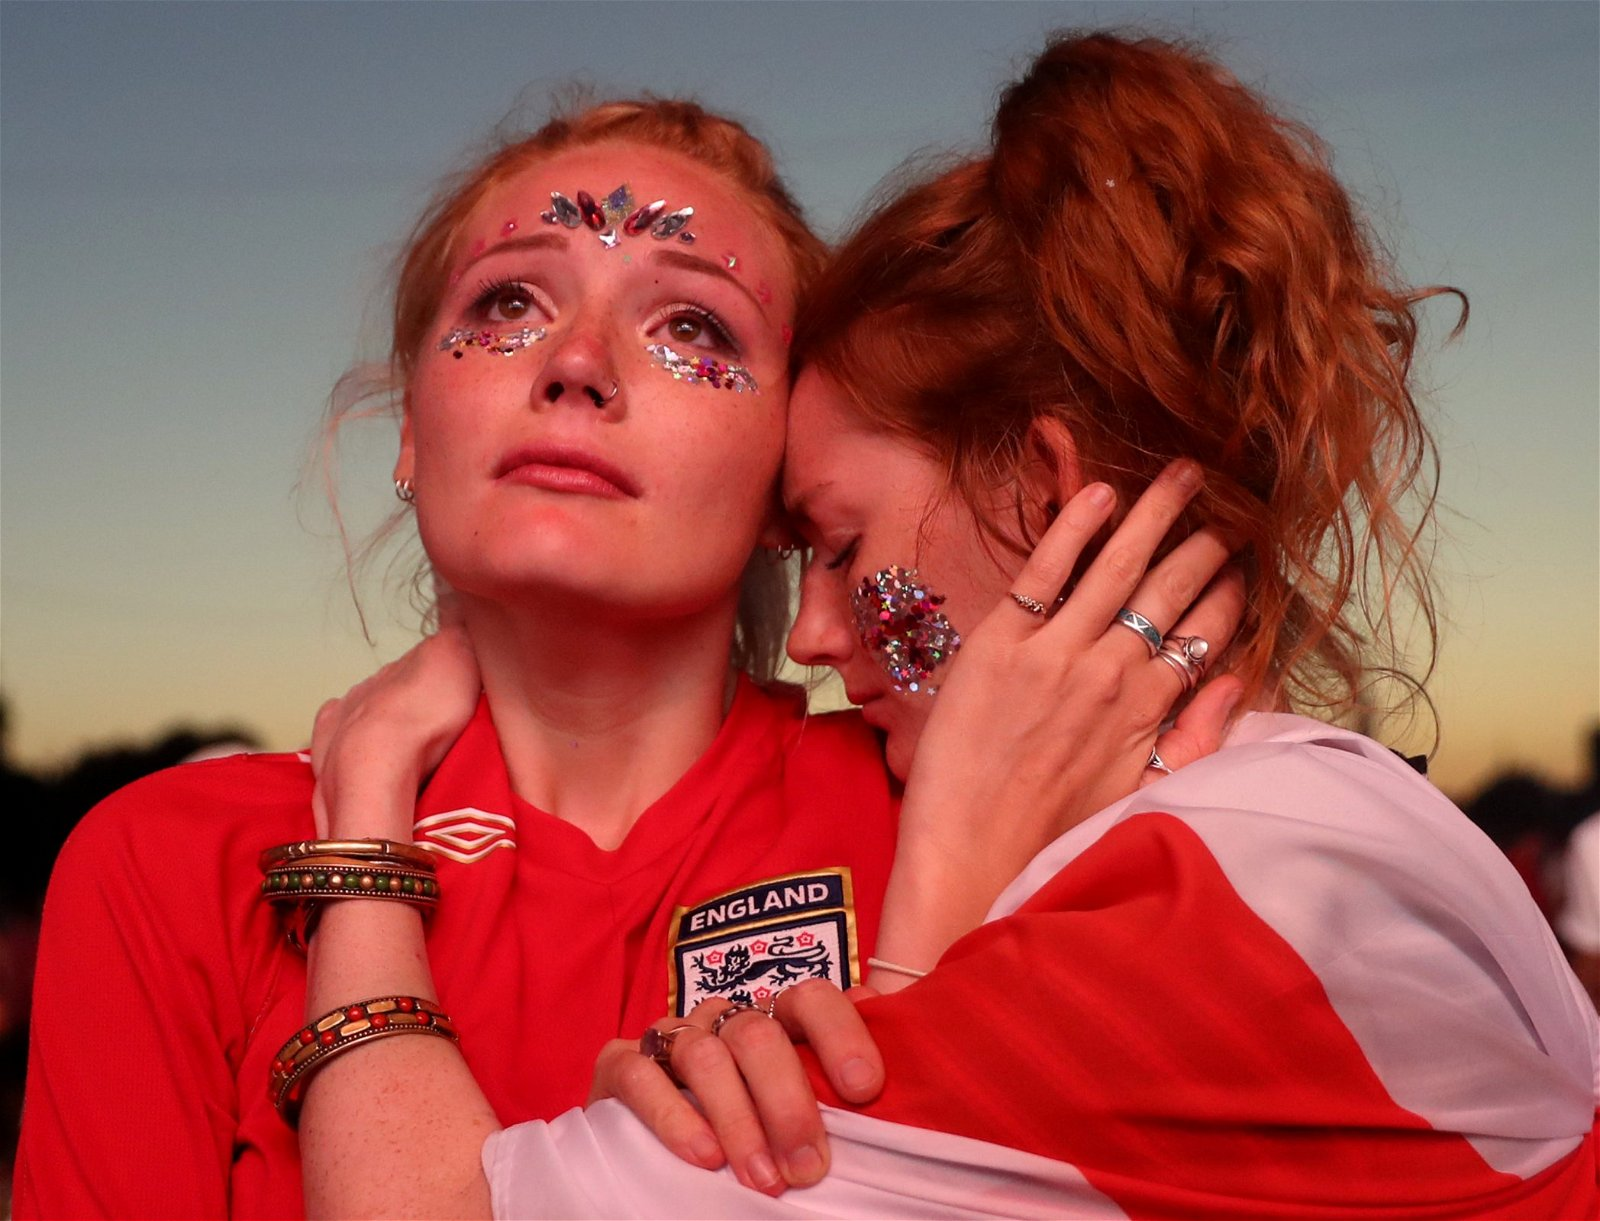 England fans cry as they lose to Croatia